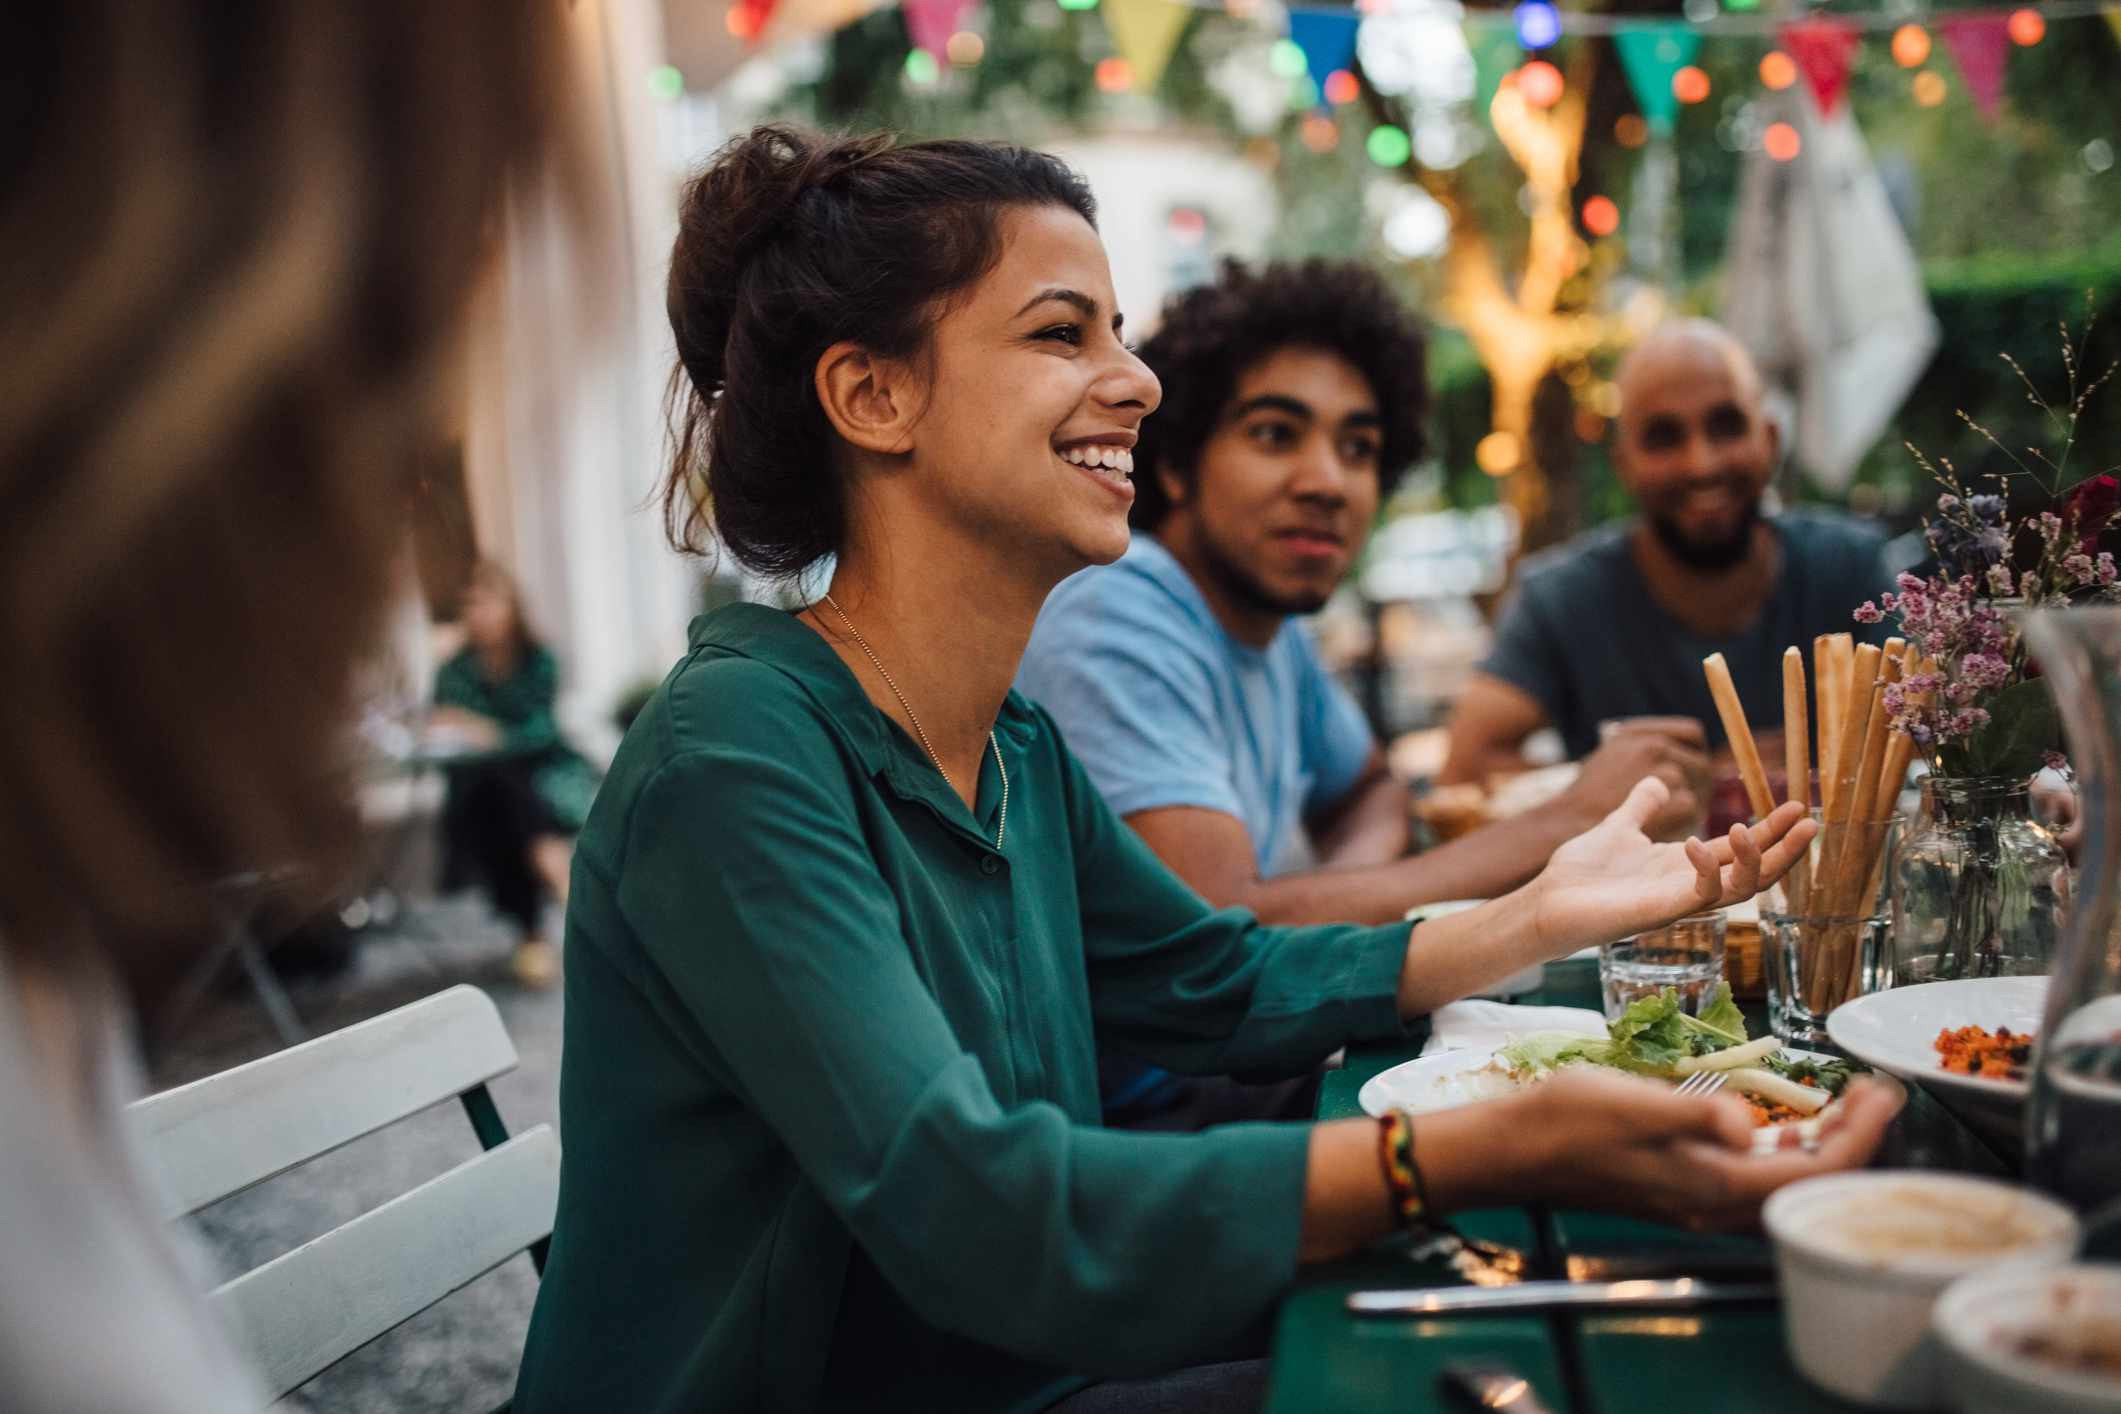 Young woman smiling, surrounded by friends at outdoor dining table